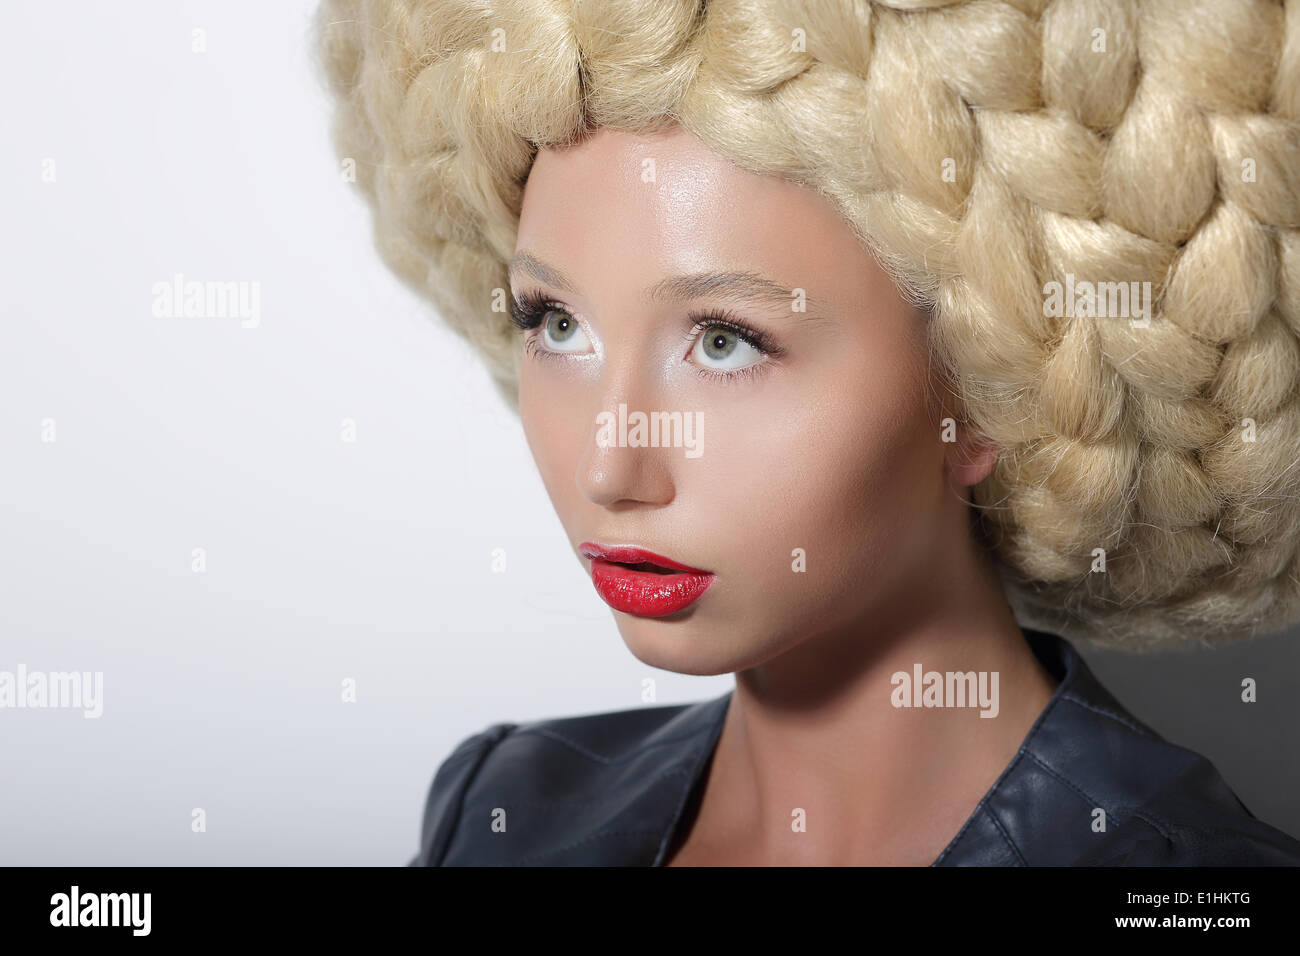 Fashion Model. Ultramodern Woman with Amazing Art Headdress - Stock Image